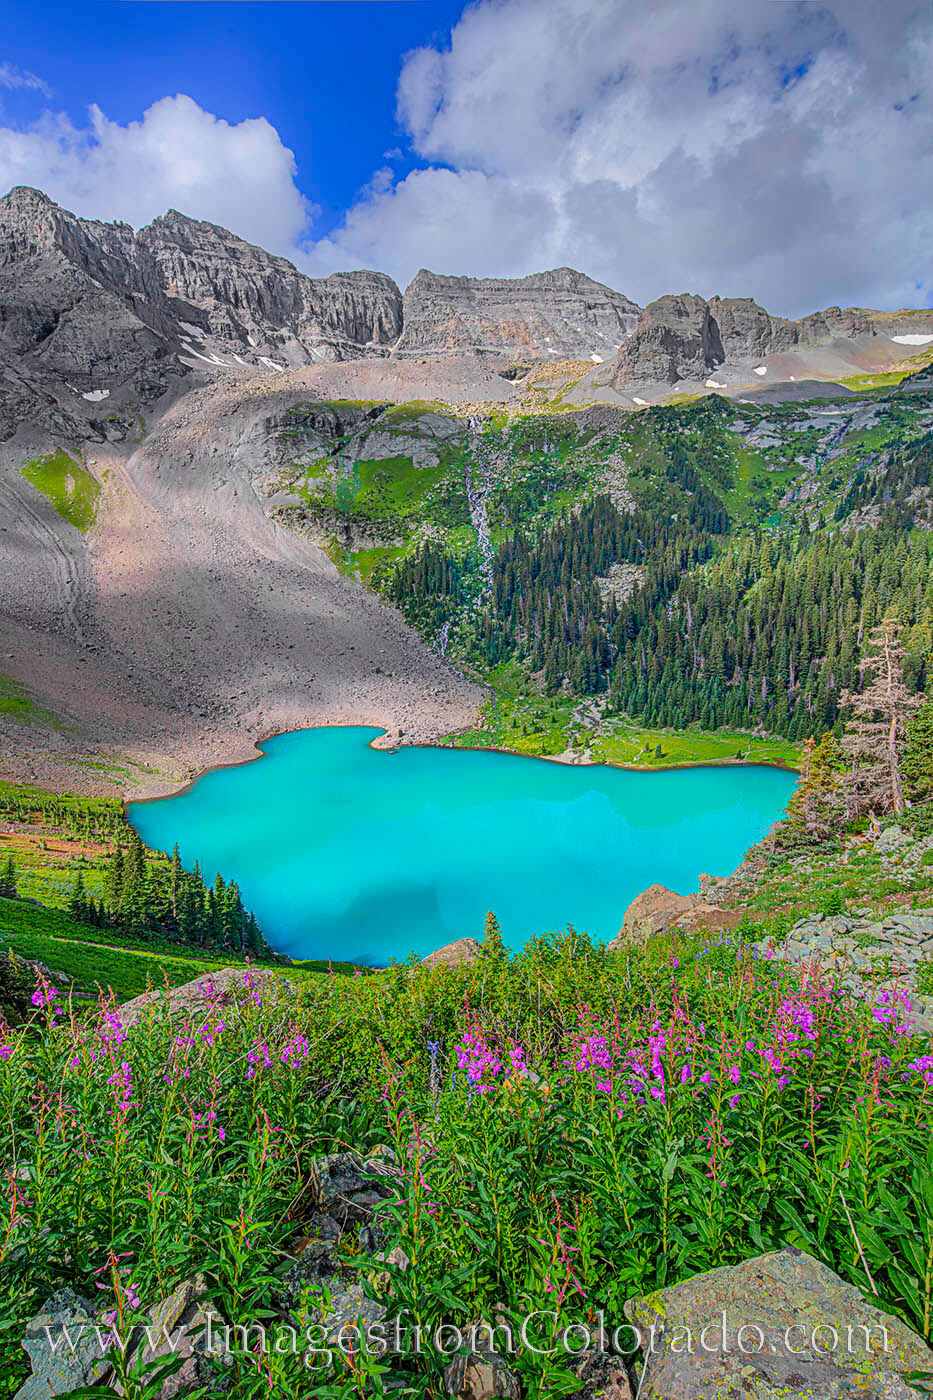 Fireweed fill the rocky crags above Lower Blue Lake in the San Juans not far from Ouray. The water was a beautiful turquoise...